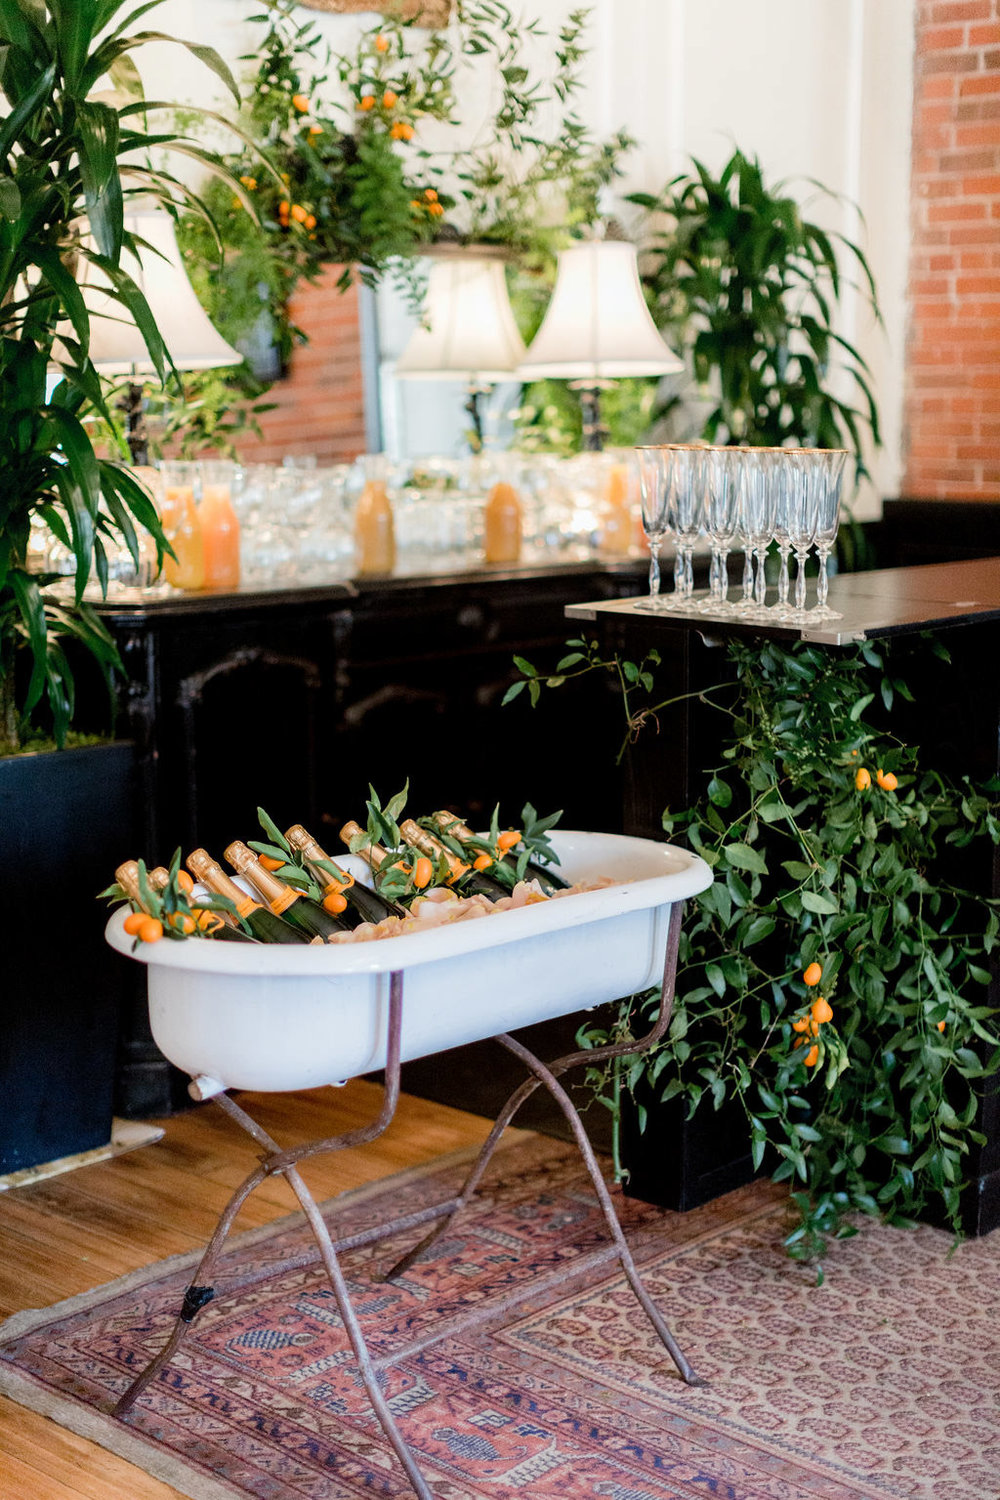 Floral bar and Champagne display at the Allison Webb Spring 2019 Bridal Fashion Event, Designed by Eddie Zaratsian, Photo by Jessica Grazia Mangia Photography